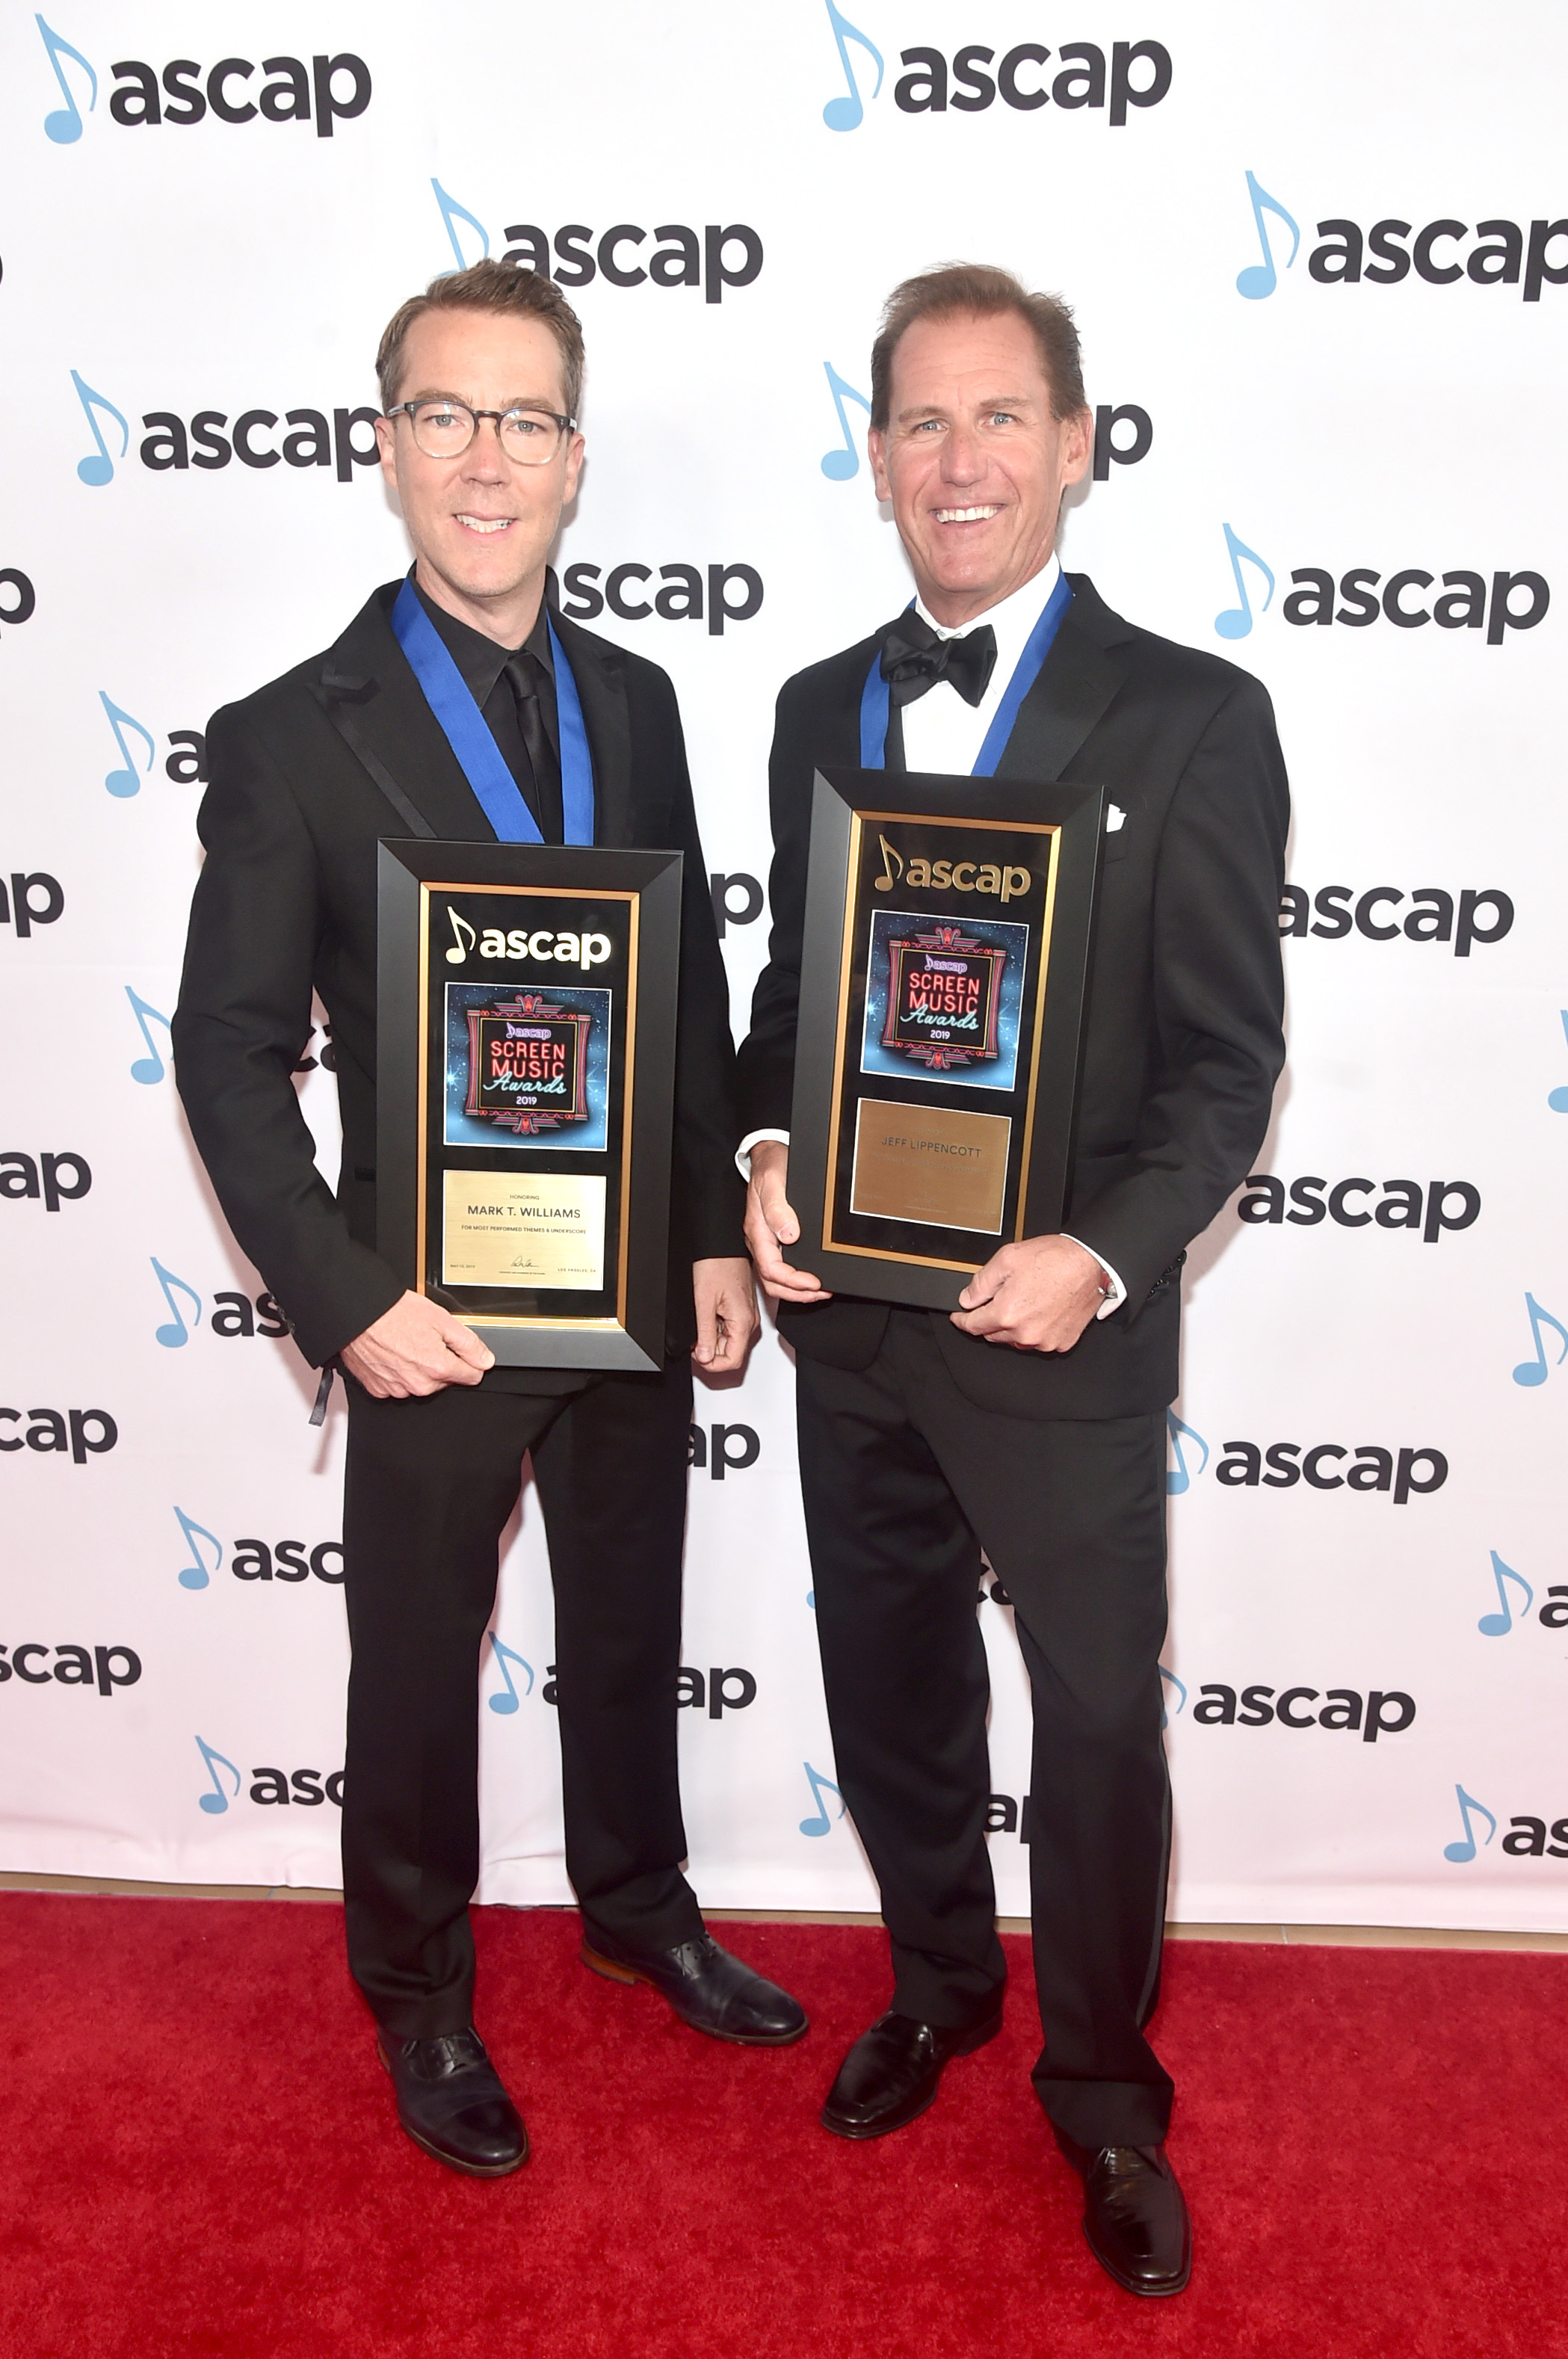 BEVERLY HILLS, CALIFORNIA - MAY 15: Composers Mark. T Williams (L) and Jeff Lippencott, winners of the award for Most Performed Themes and Underscore attend the ASCAP 2019 Screen Music Awards at The Beverly Hilton Hotel on May 15, 2019 in Beverly Hills, California. (Photo by Alberto E. Rodriguez/Getty Images for ASCAP)